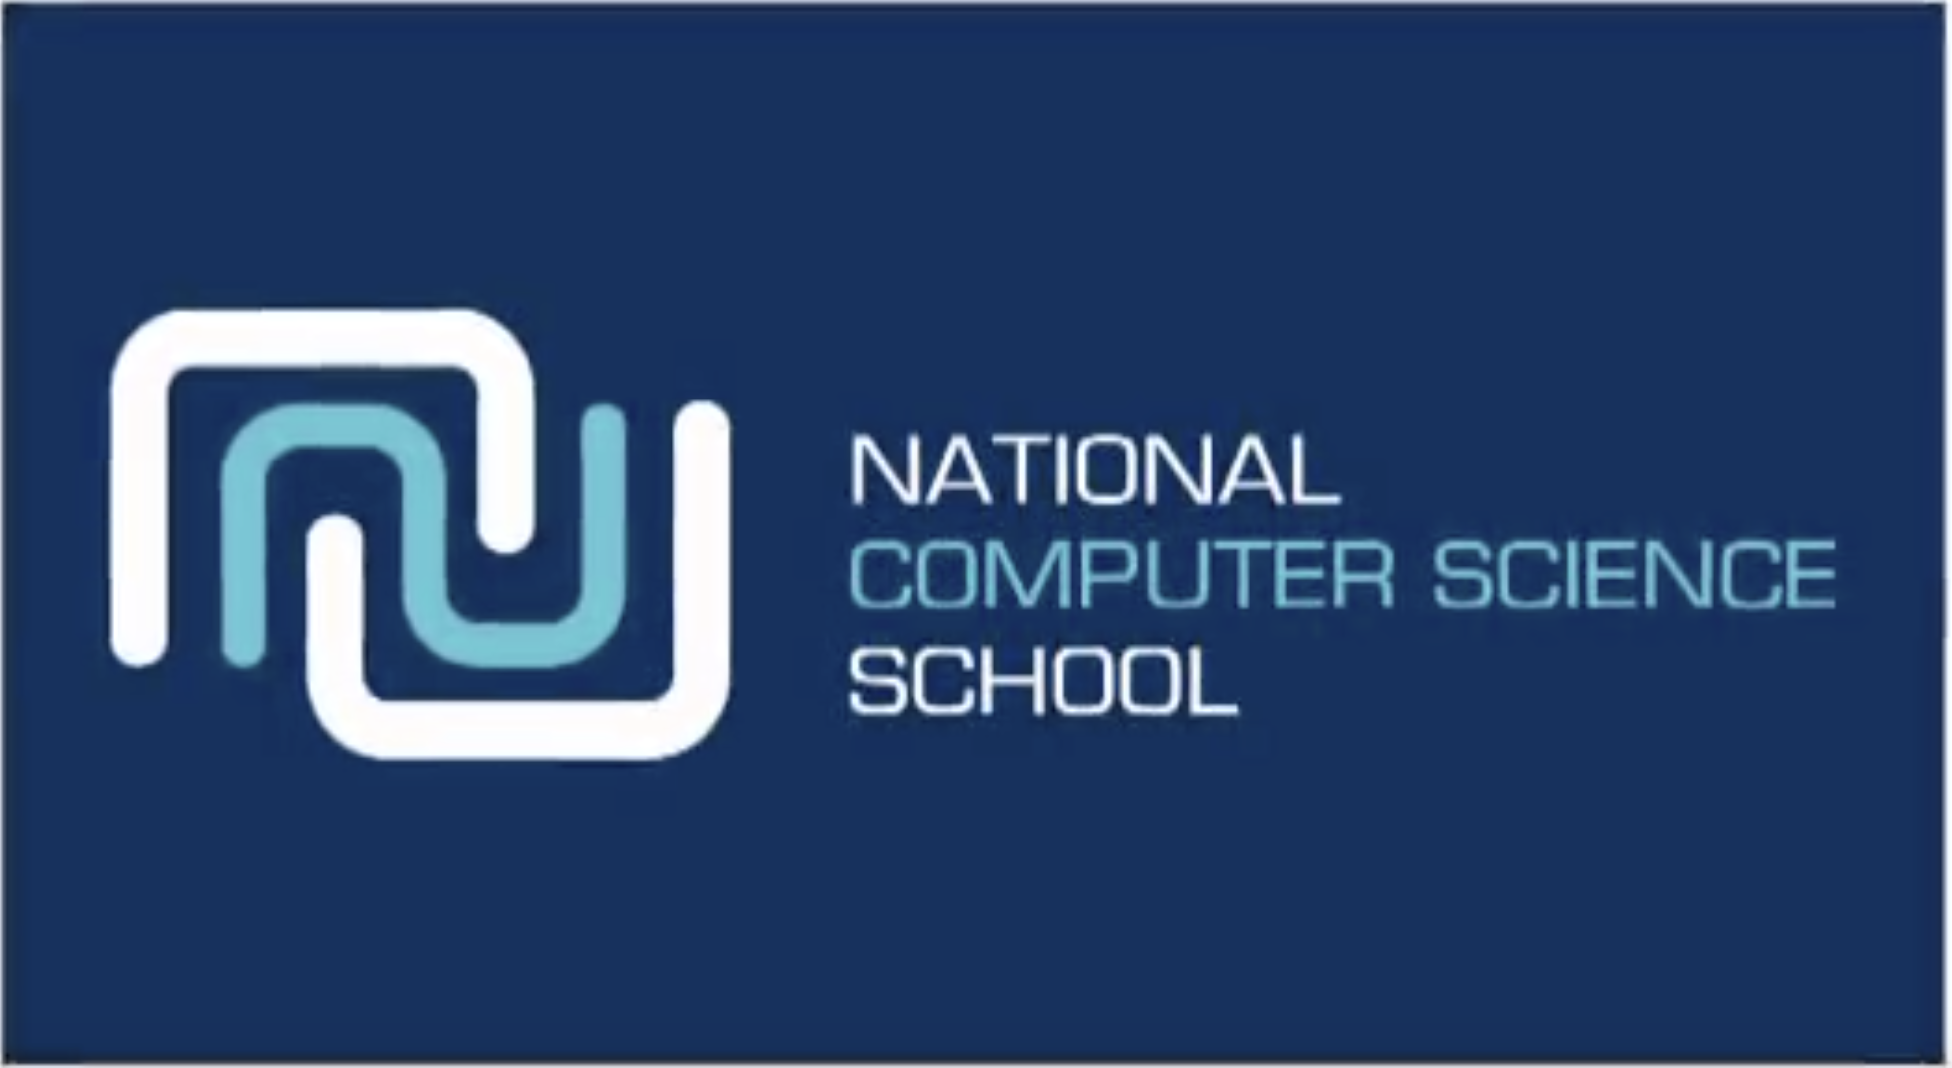 National Computer Science Thumbnail.png